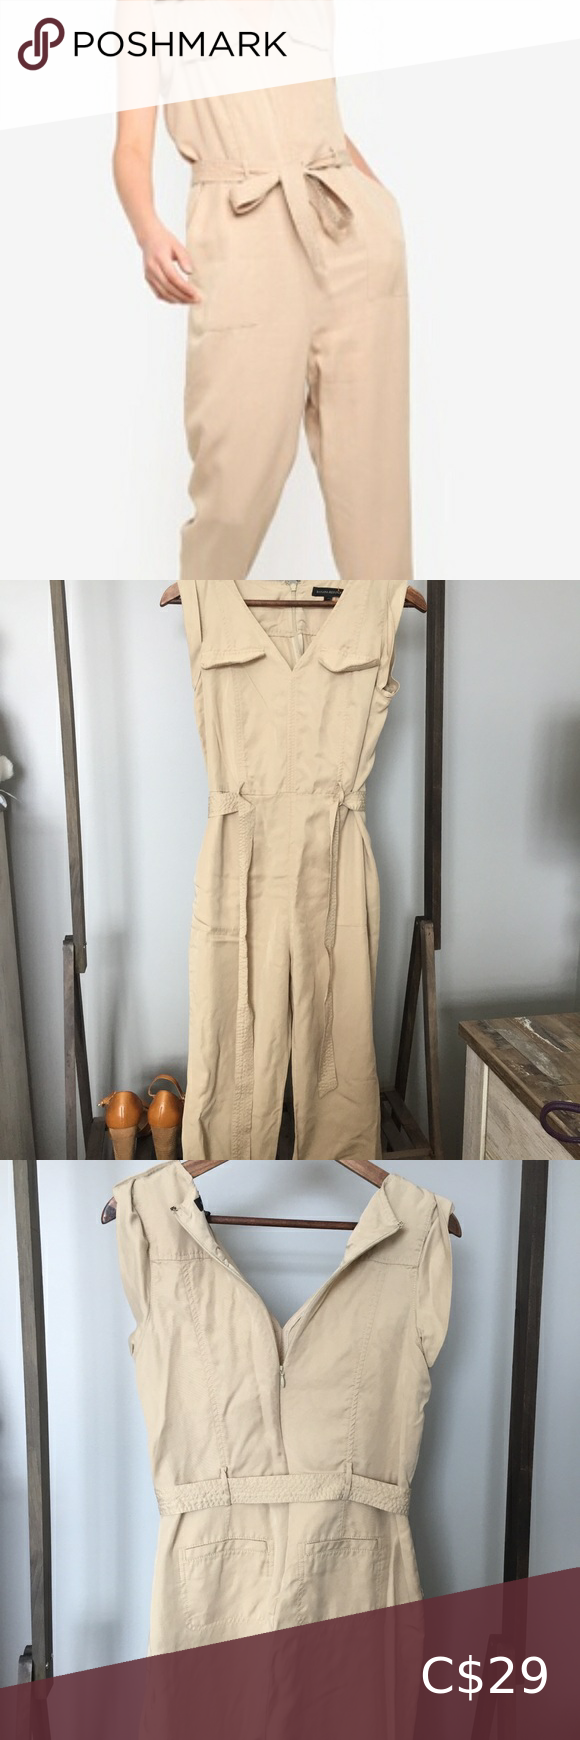 🌸4for$30 Banana Republic Jumpsuit